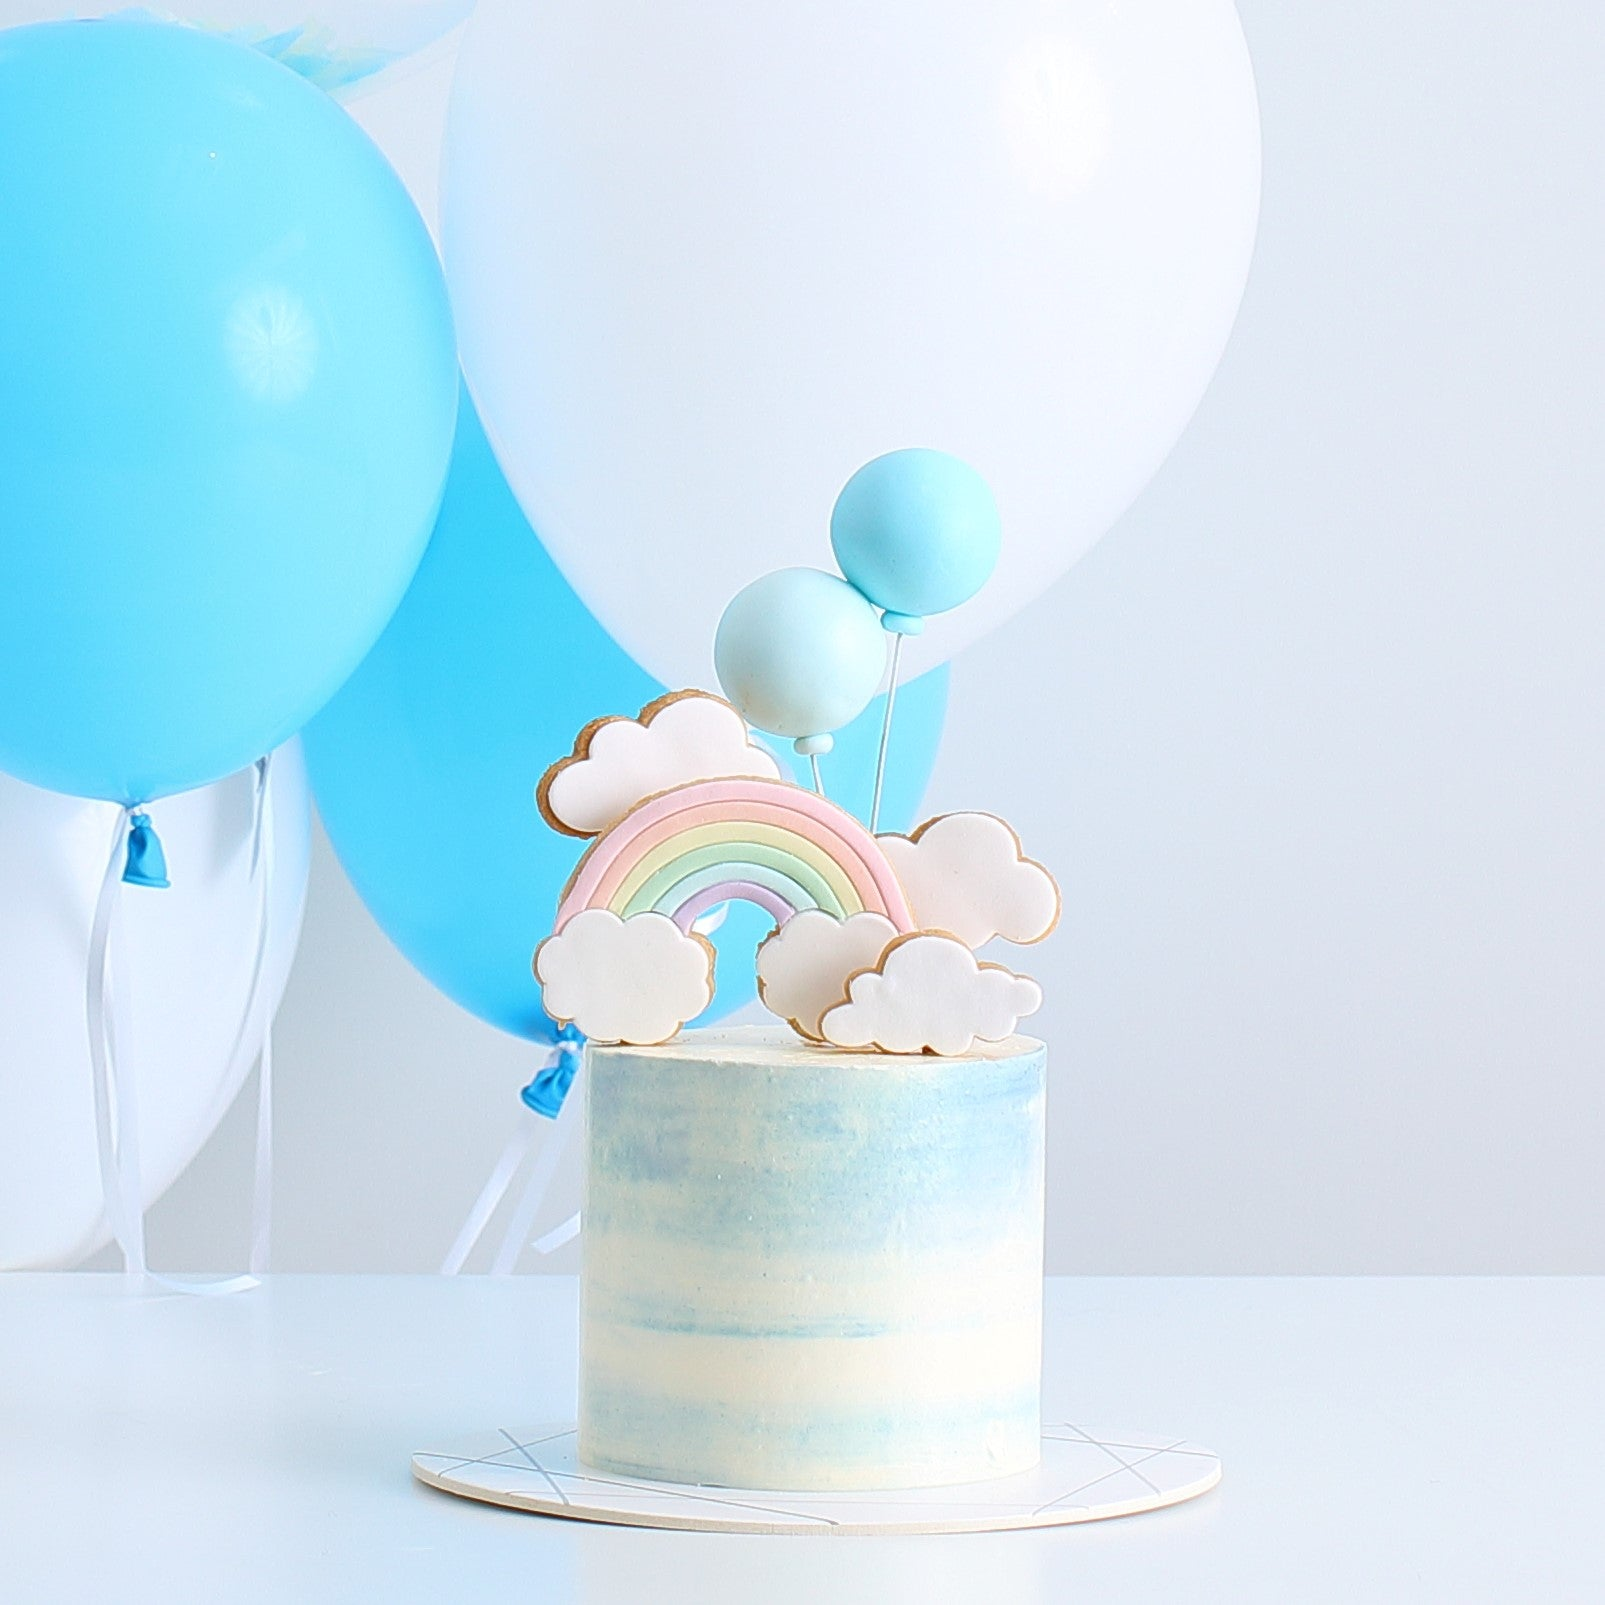 Rainbow, Clouds and Balloons Cake with Balloon Bouquet Set